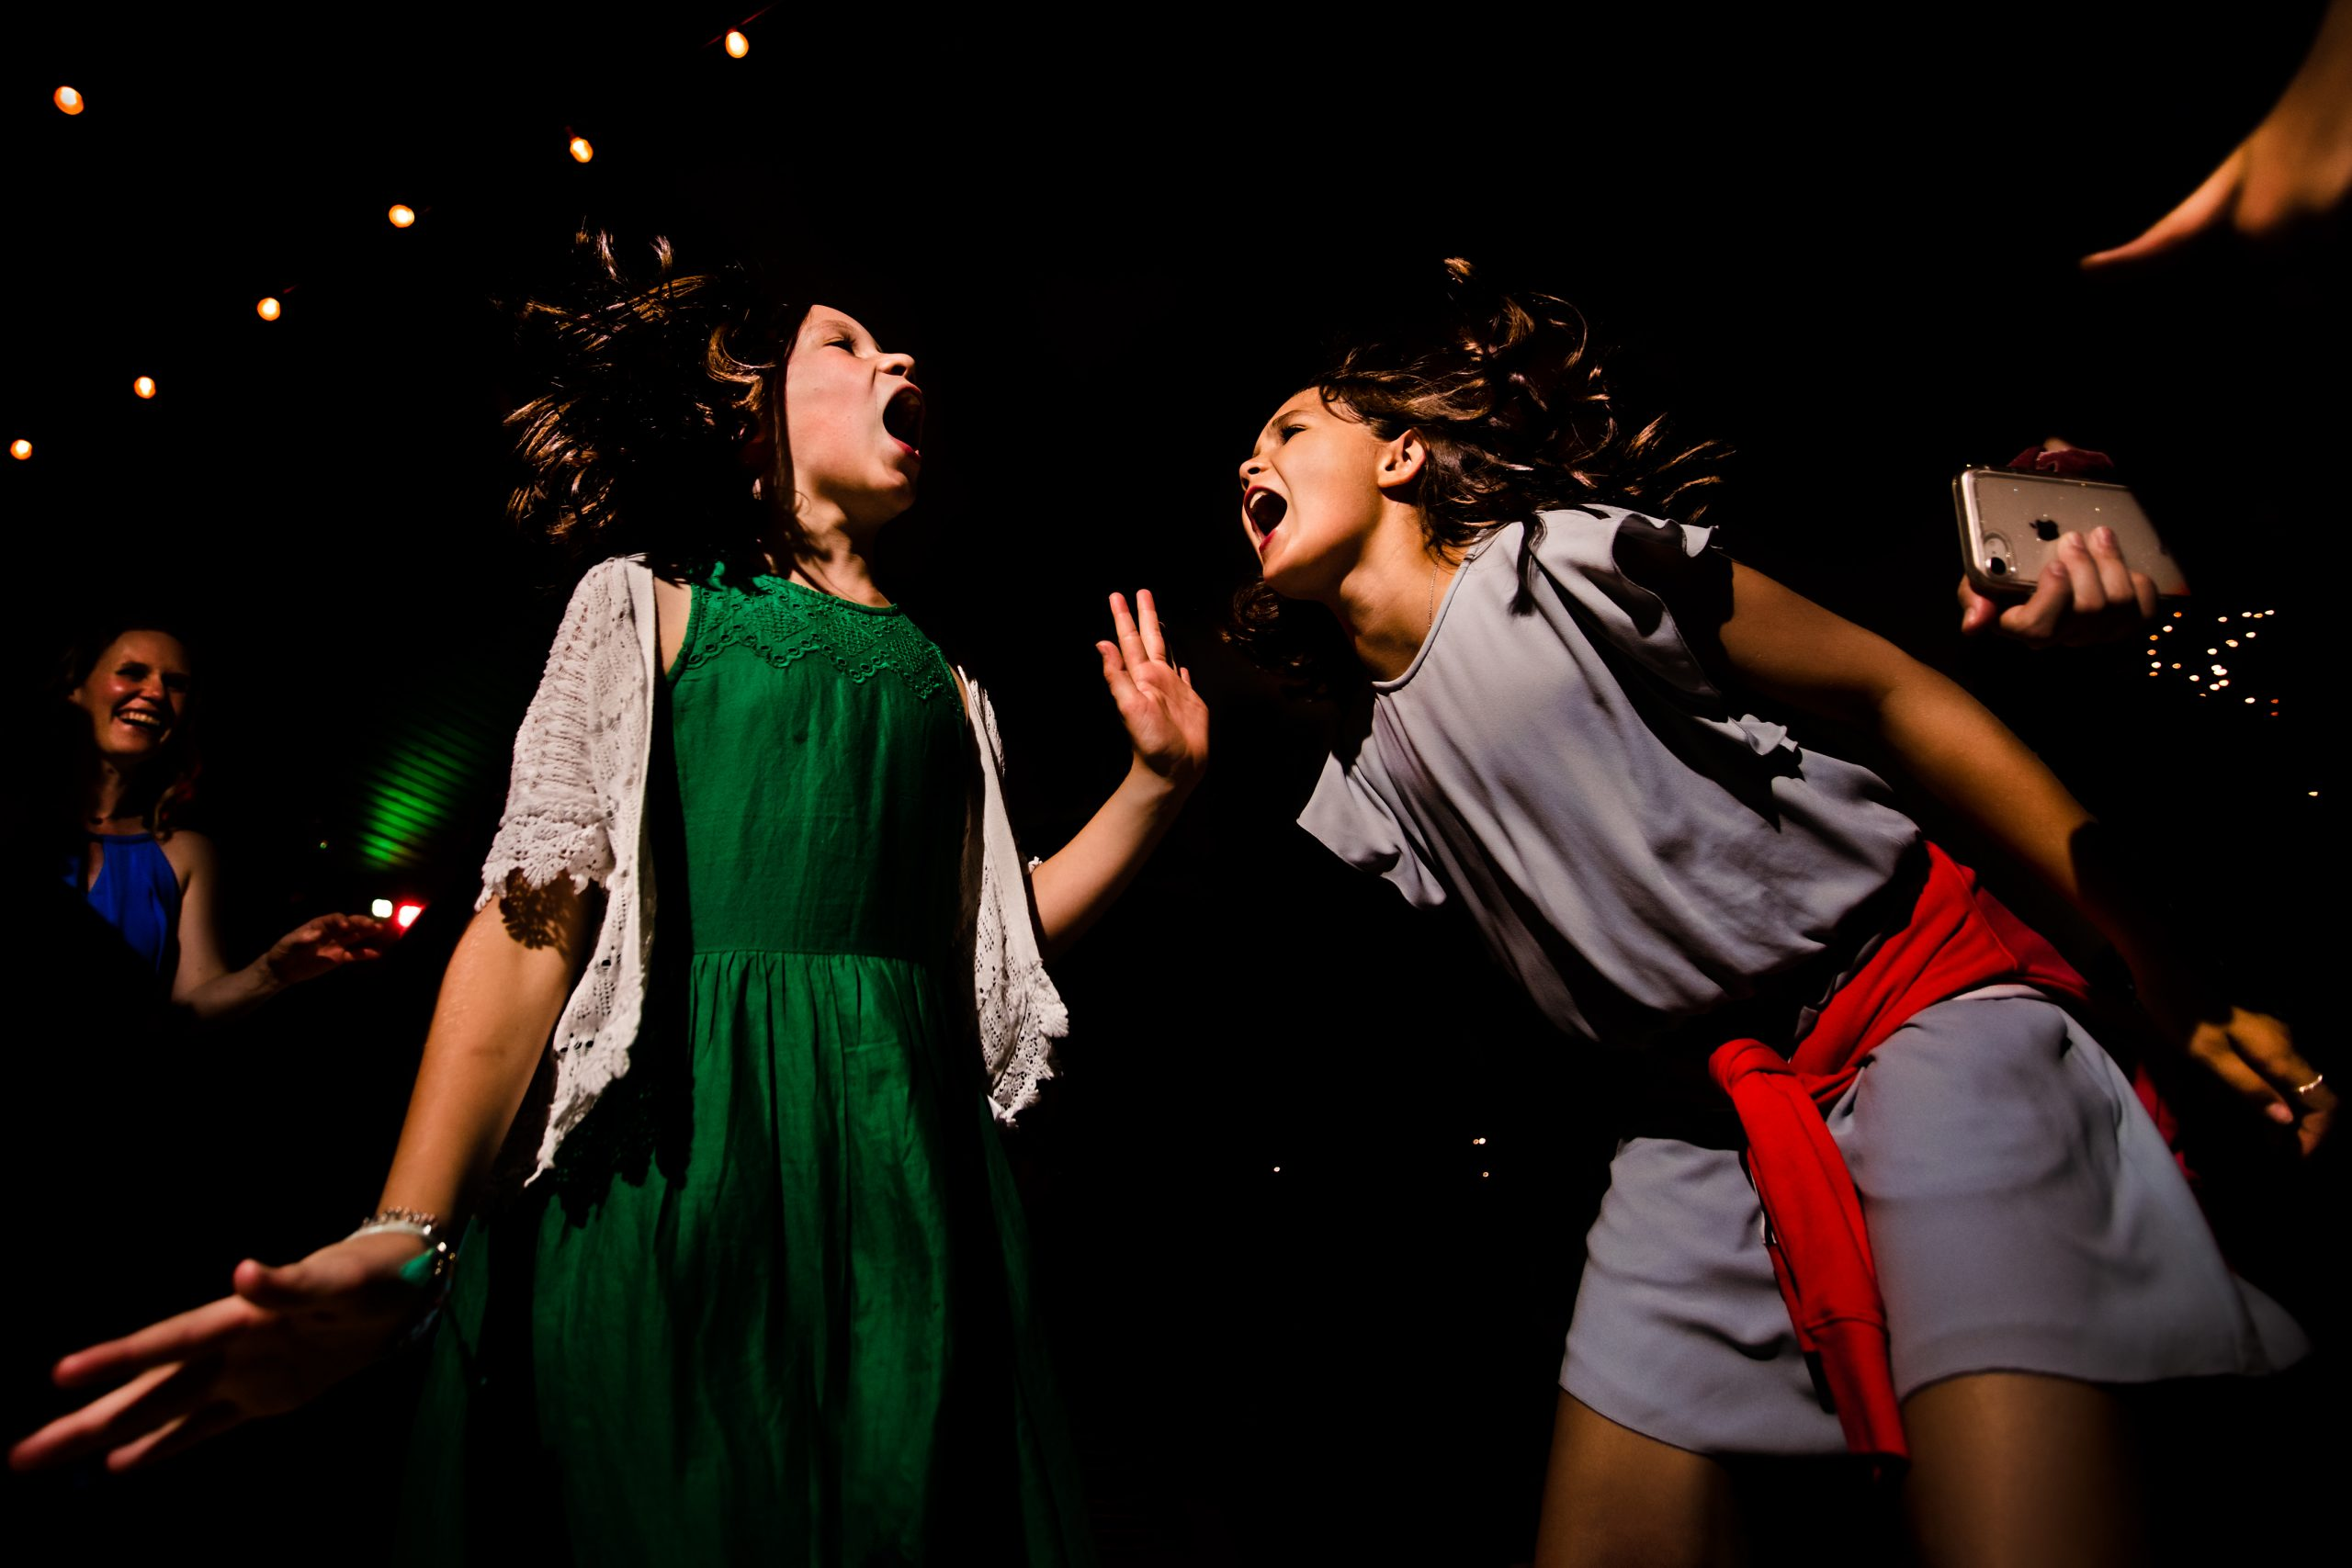 Two girls dance excitedly at a wedding reception party